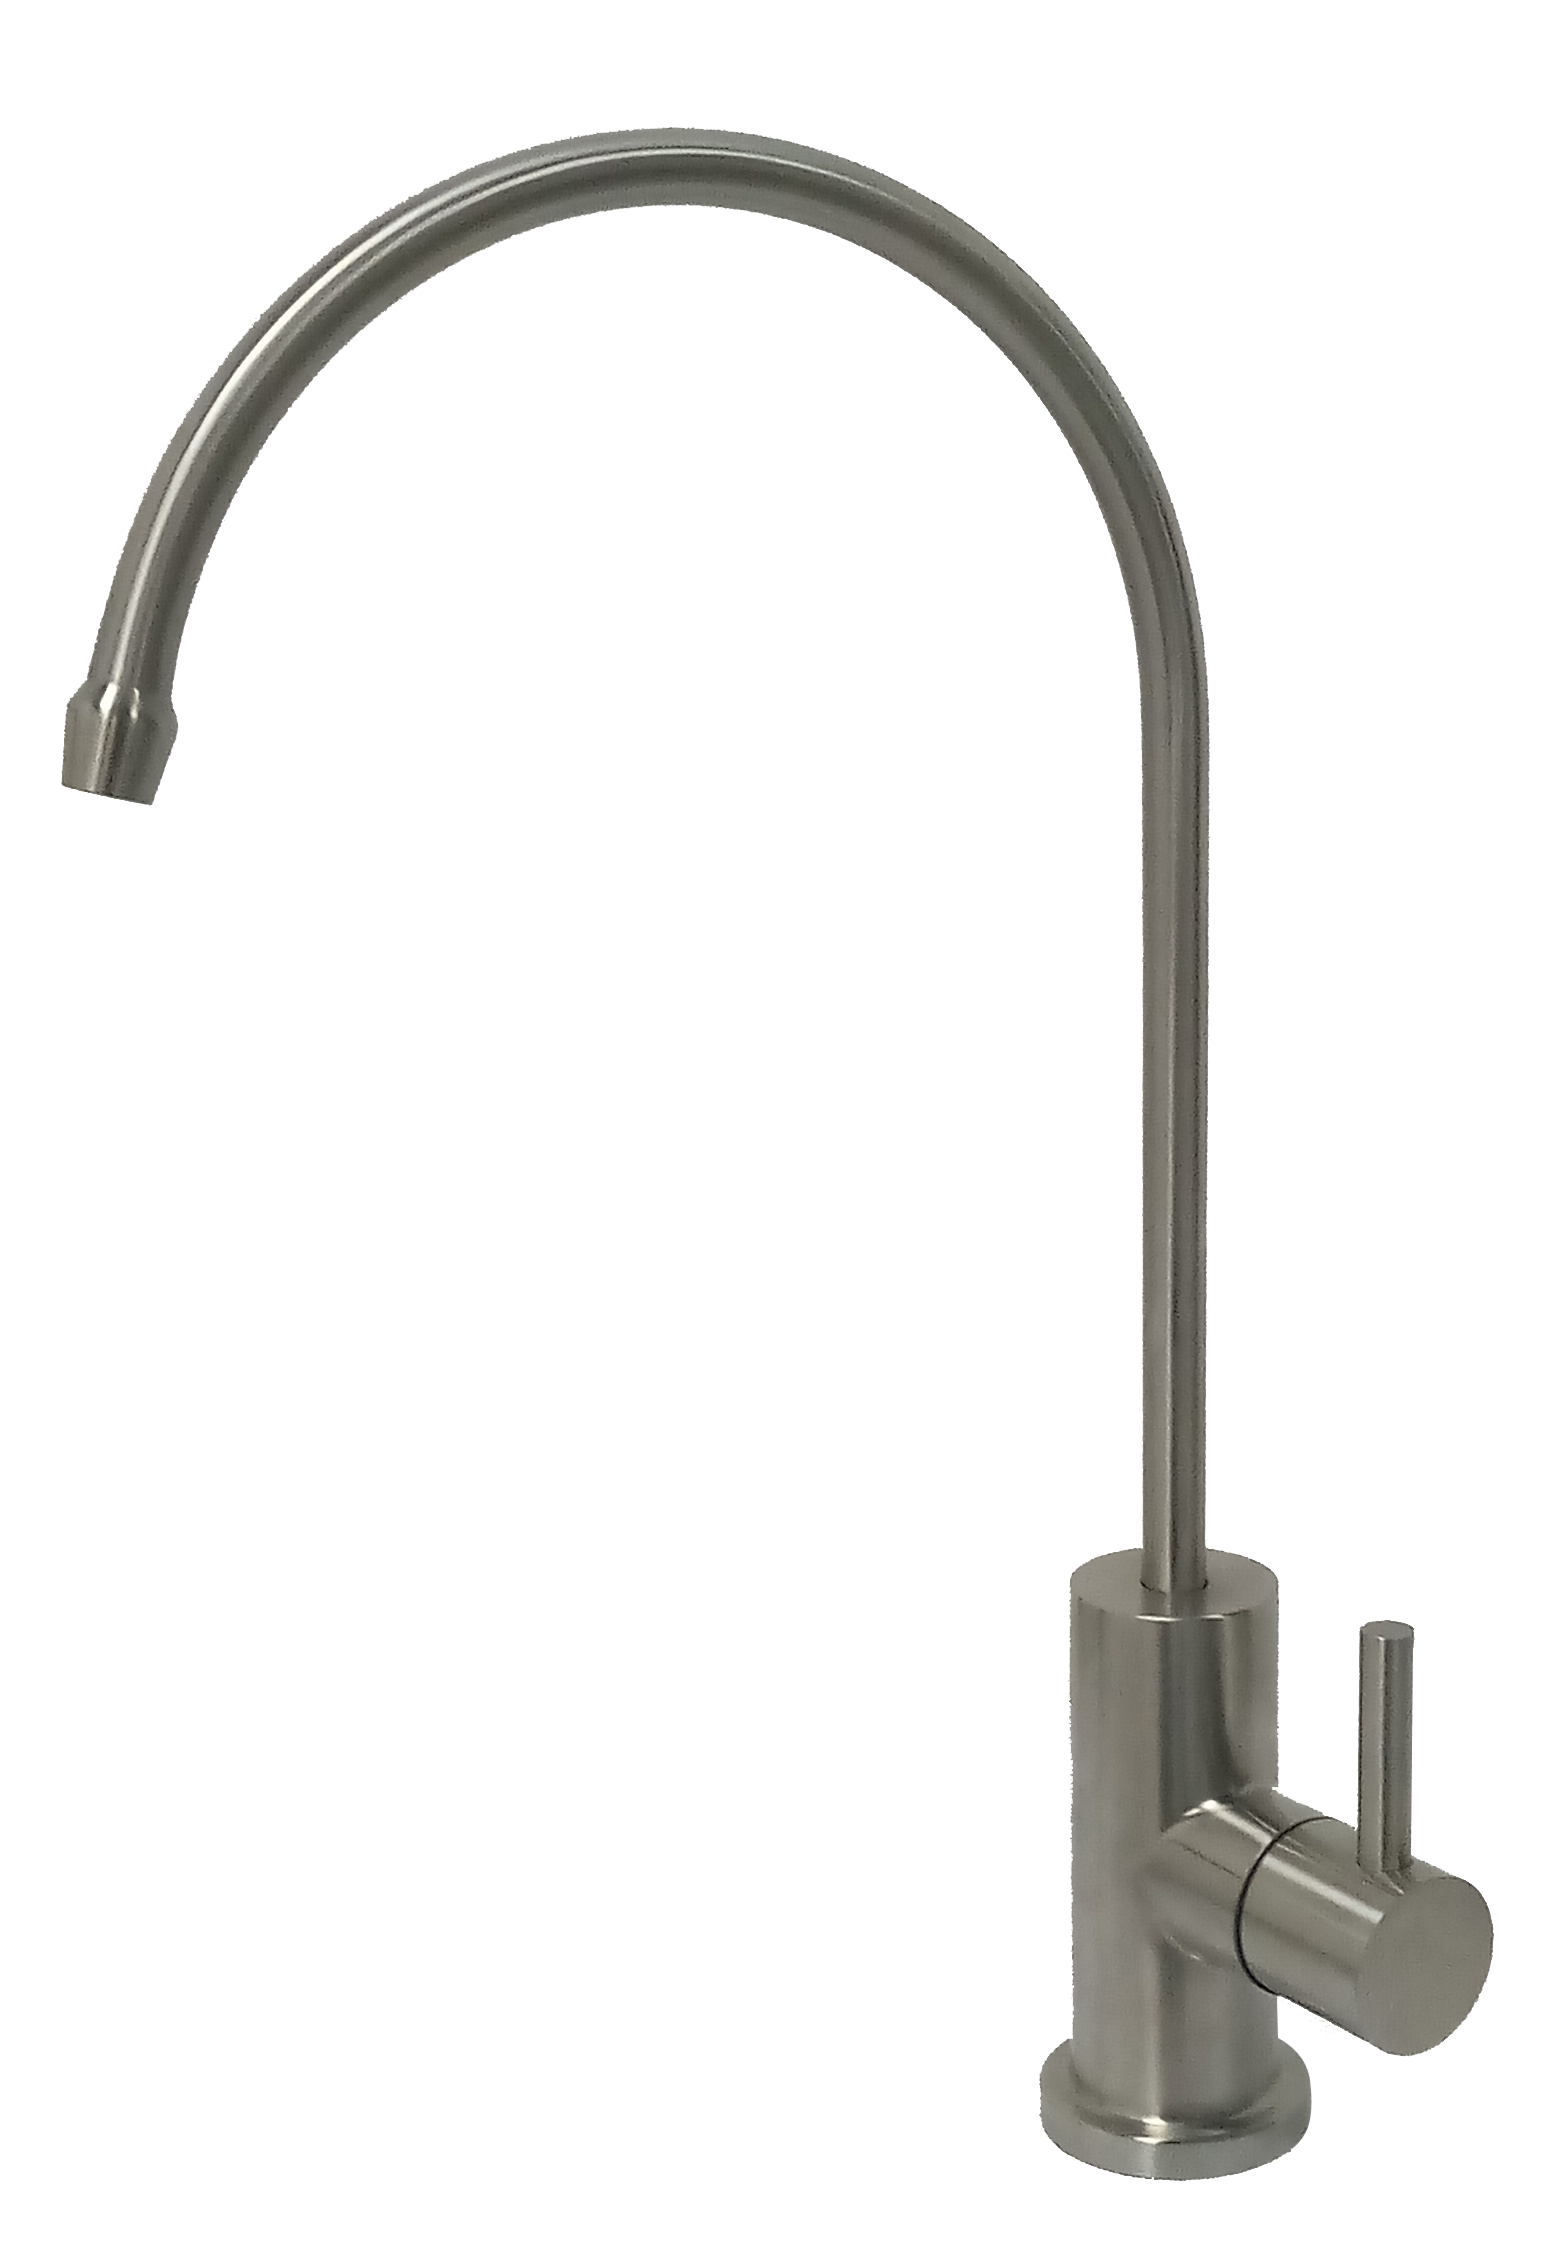 Stainless Steel Water Filter Tap